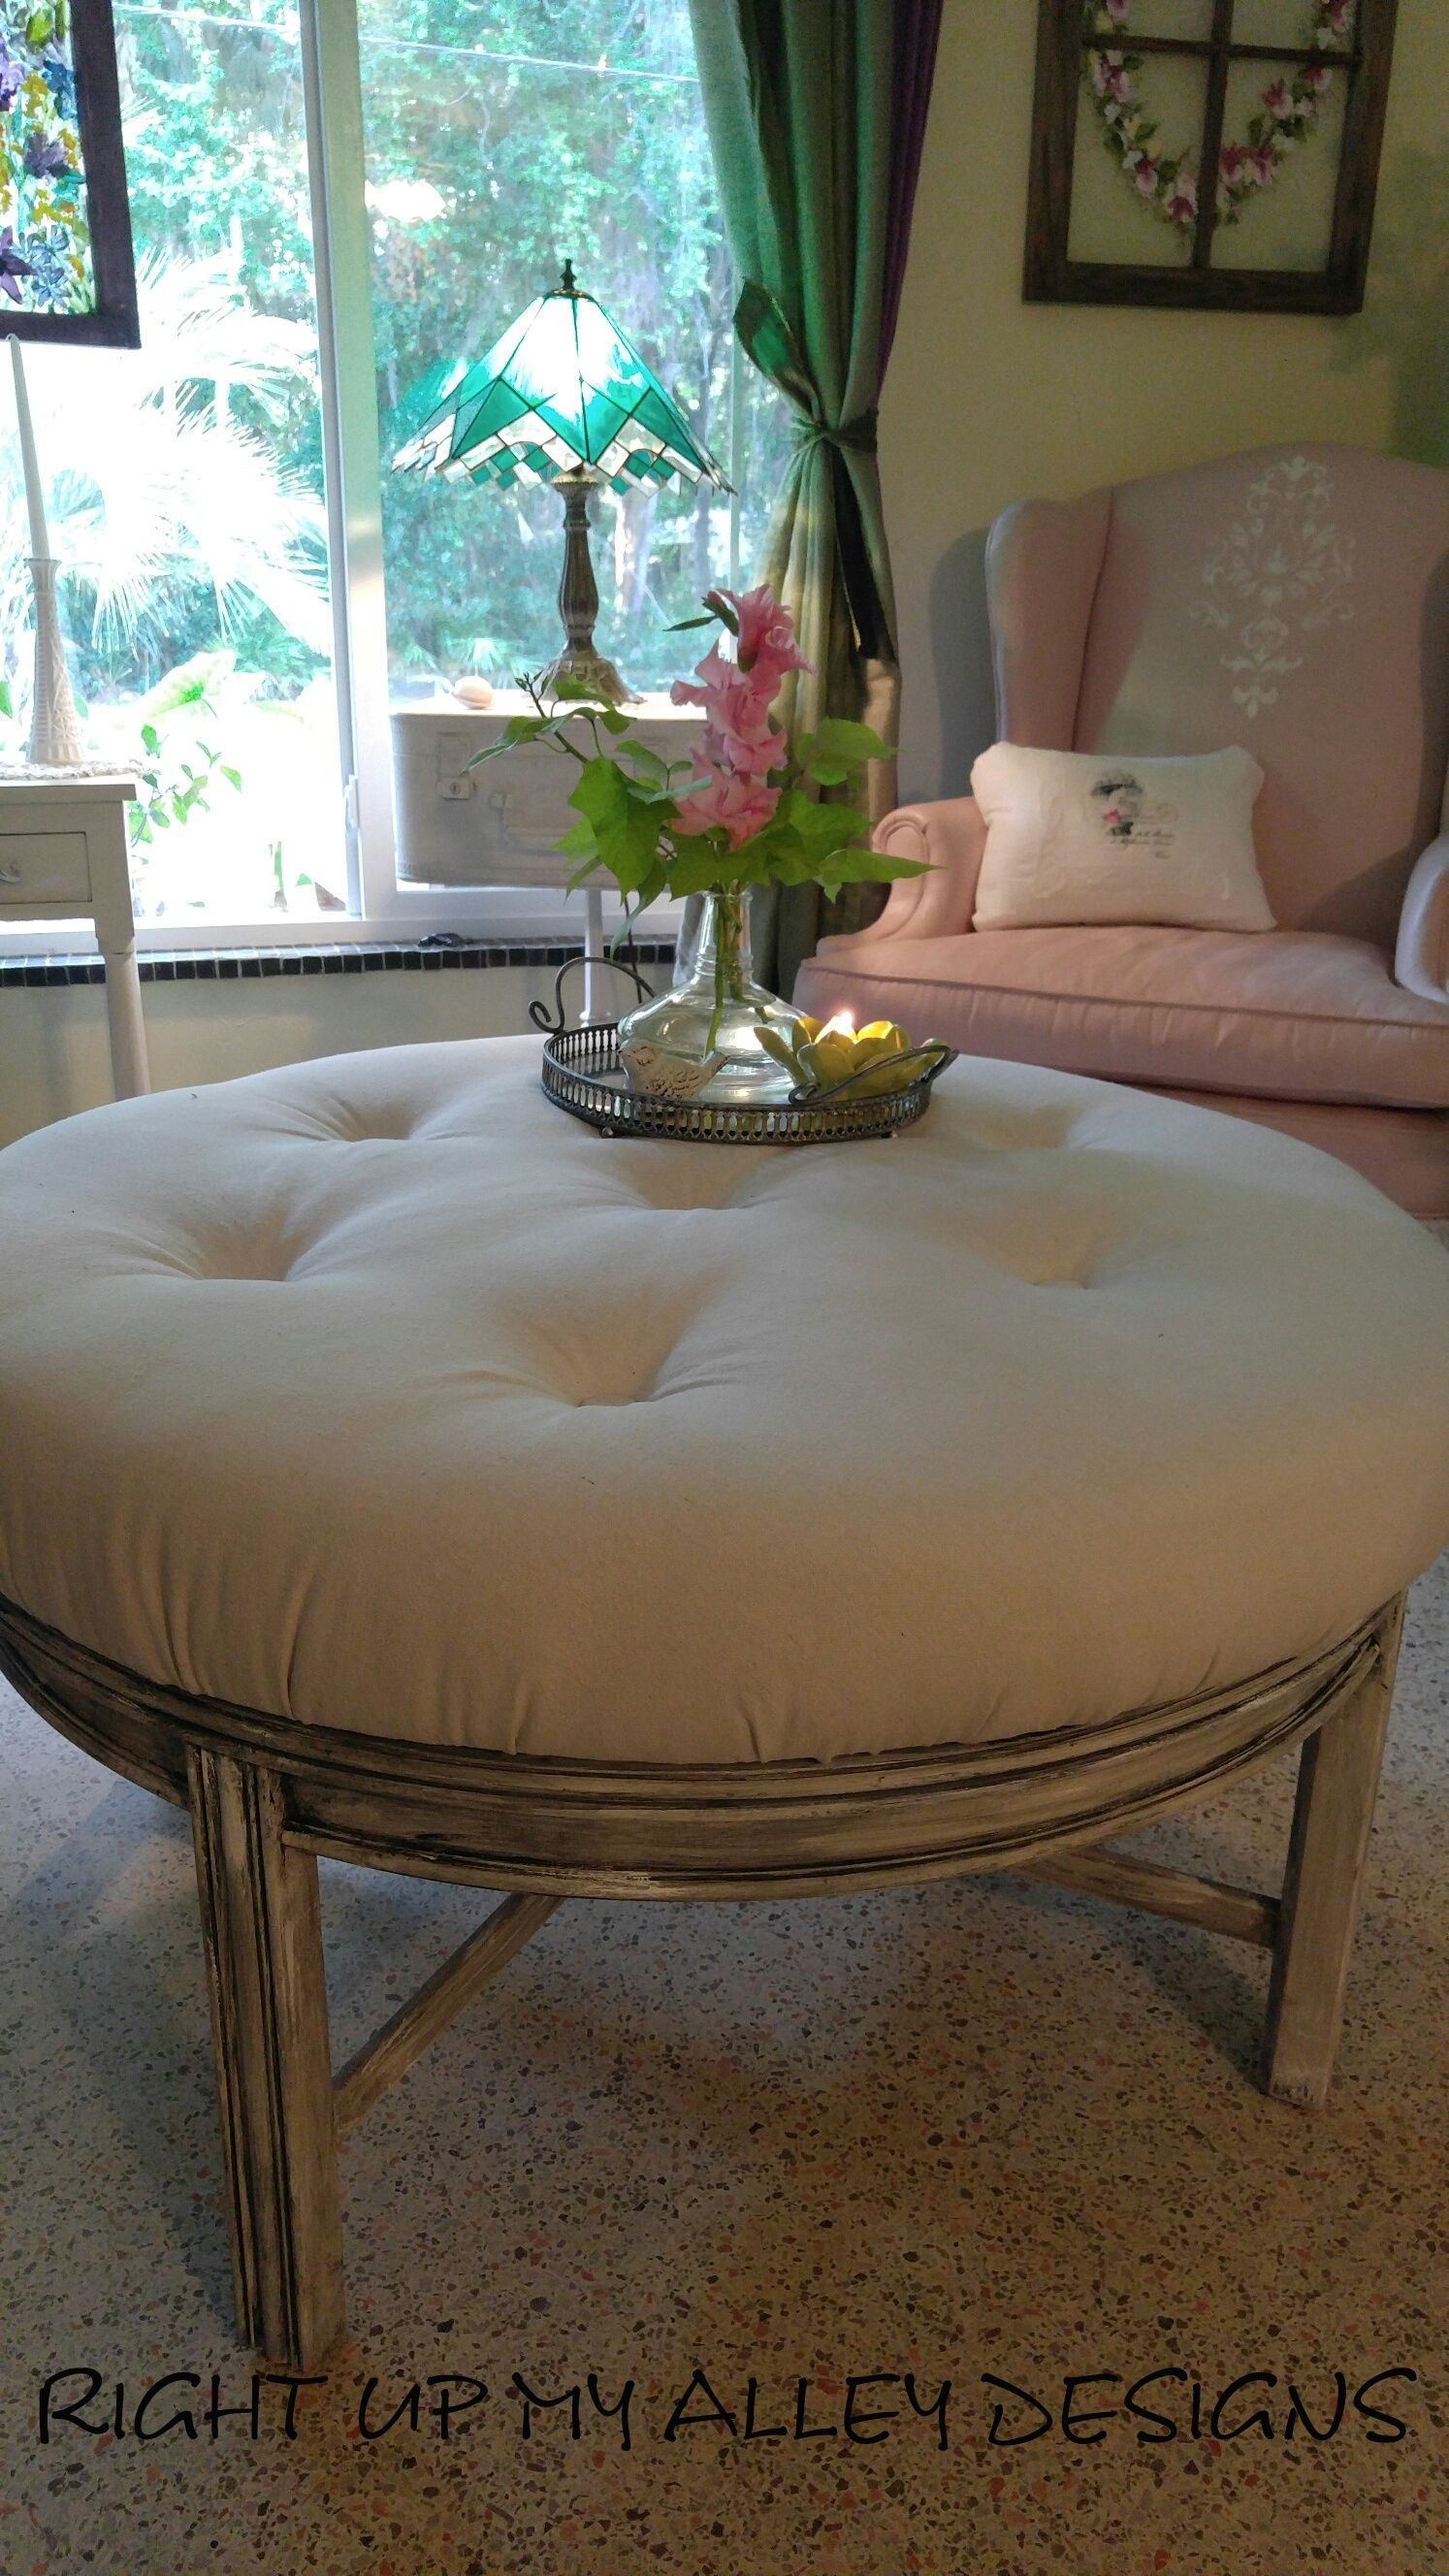 Ottoman Coffee Table Round,Hand-painted coffee table ottoman,Tufted ...